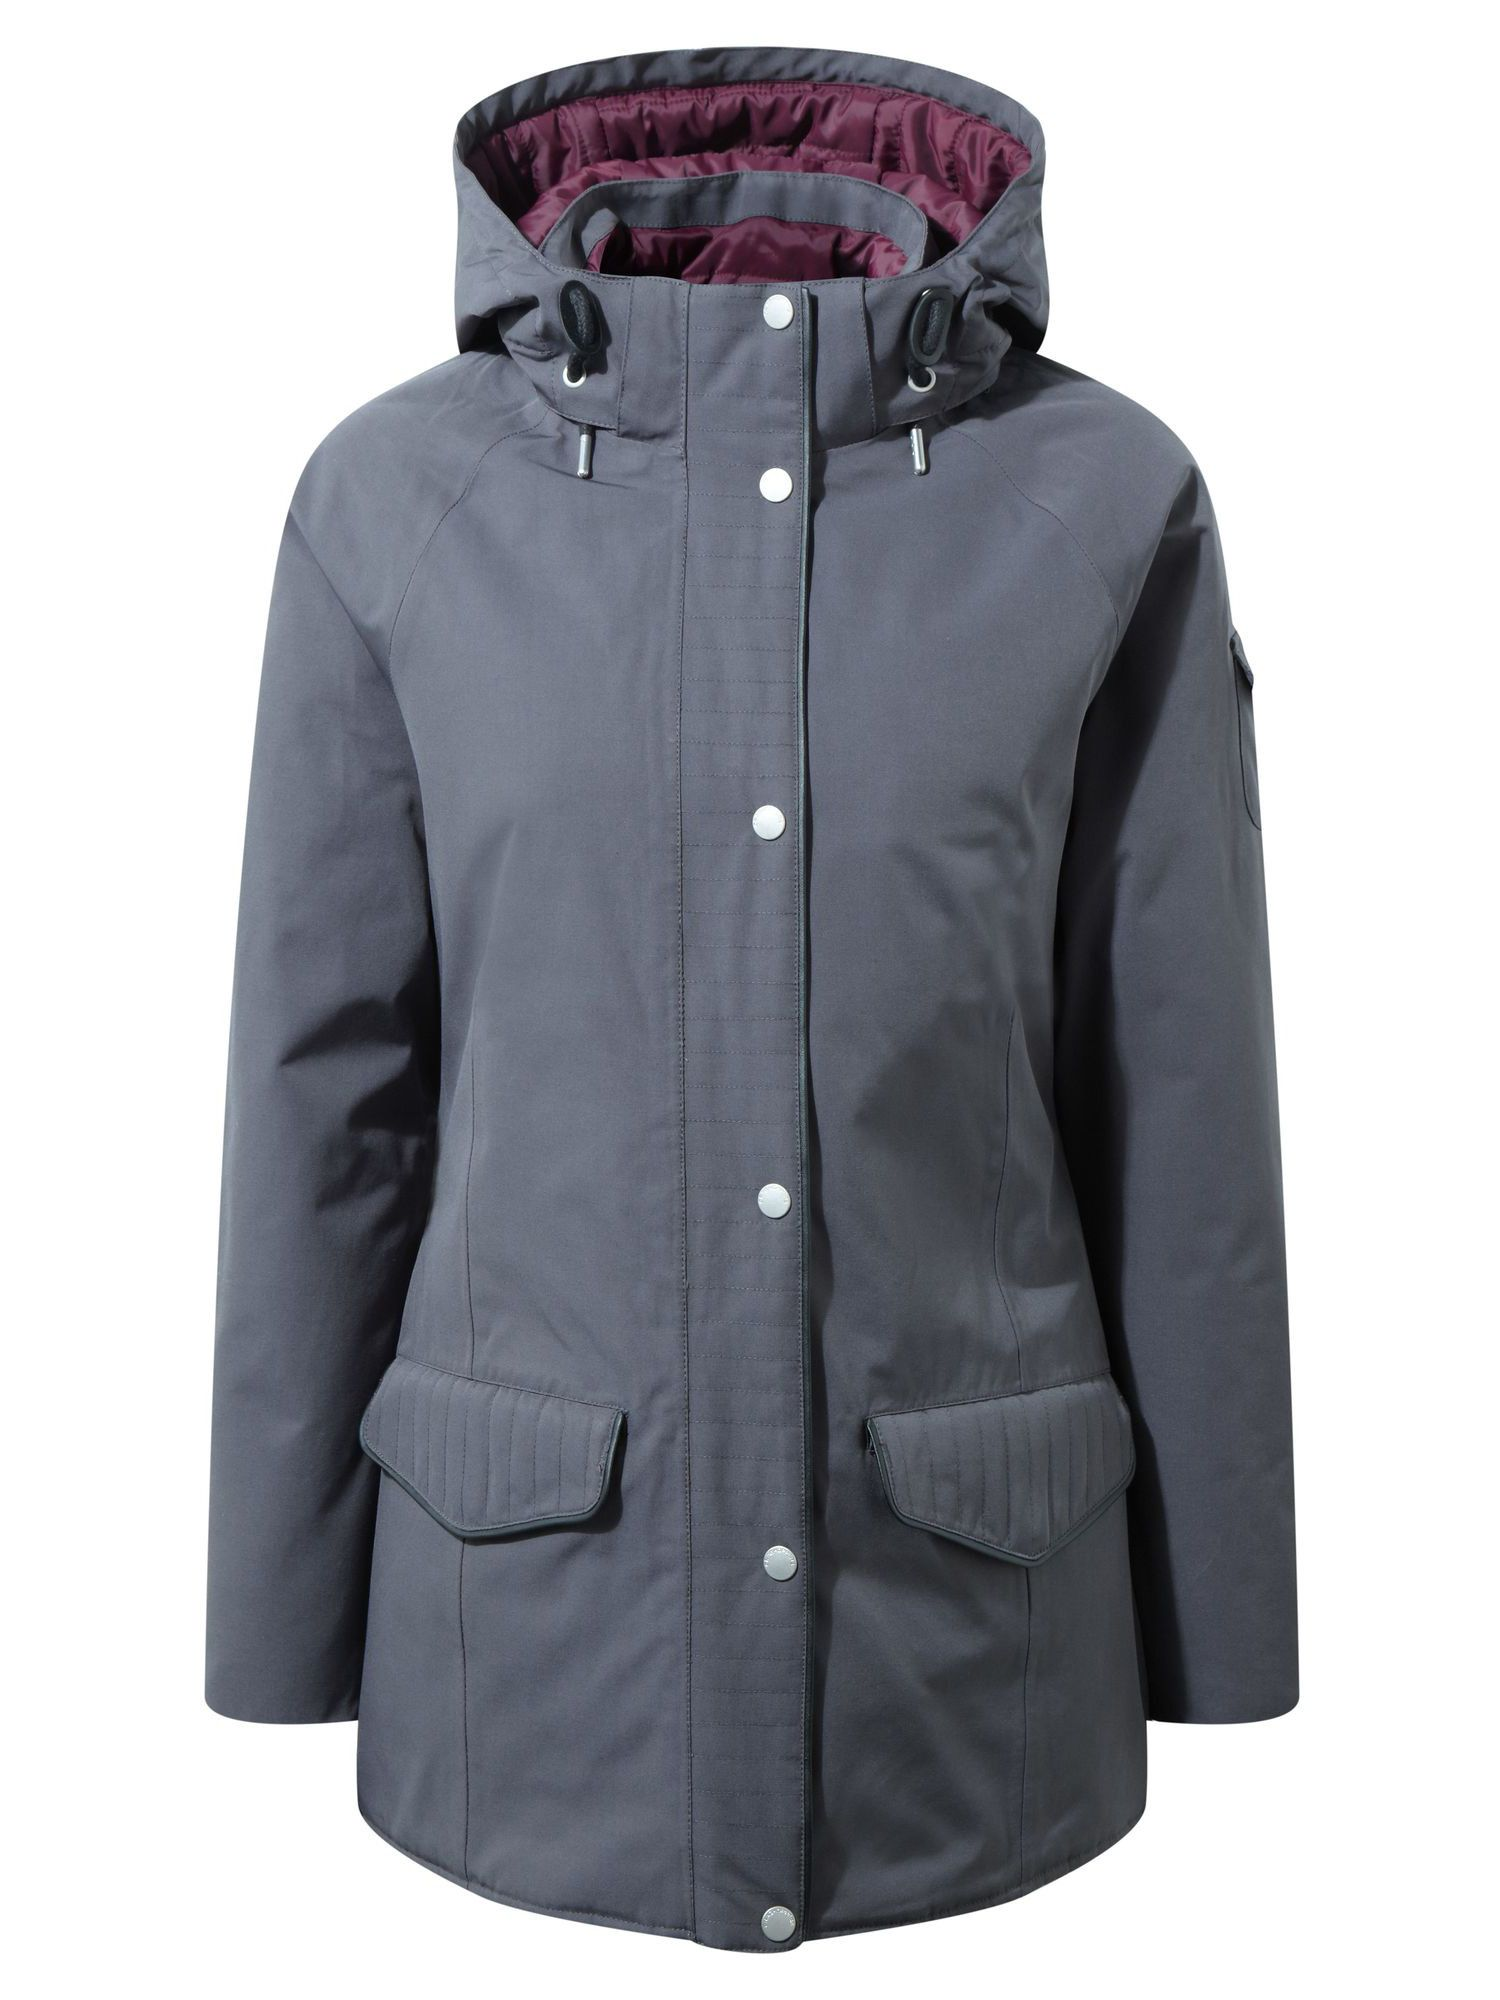 Craghoppers 250 Waterproof Jacket, Grey